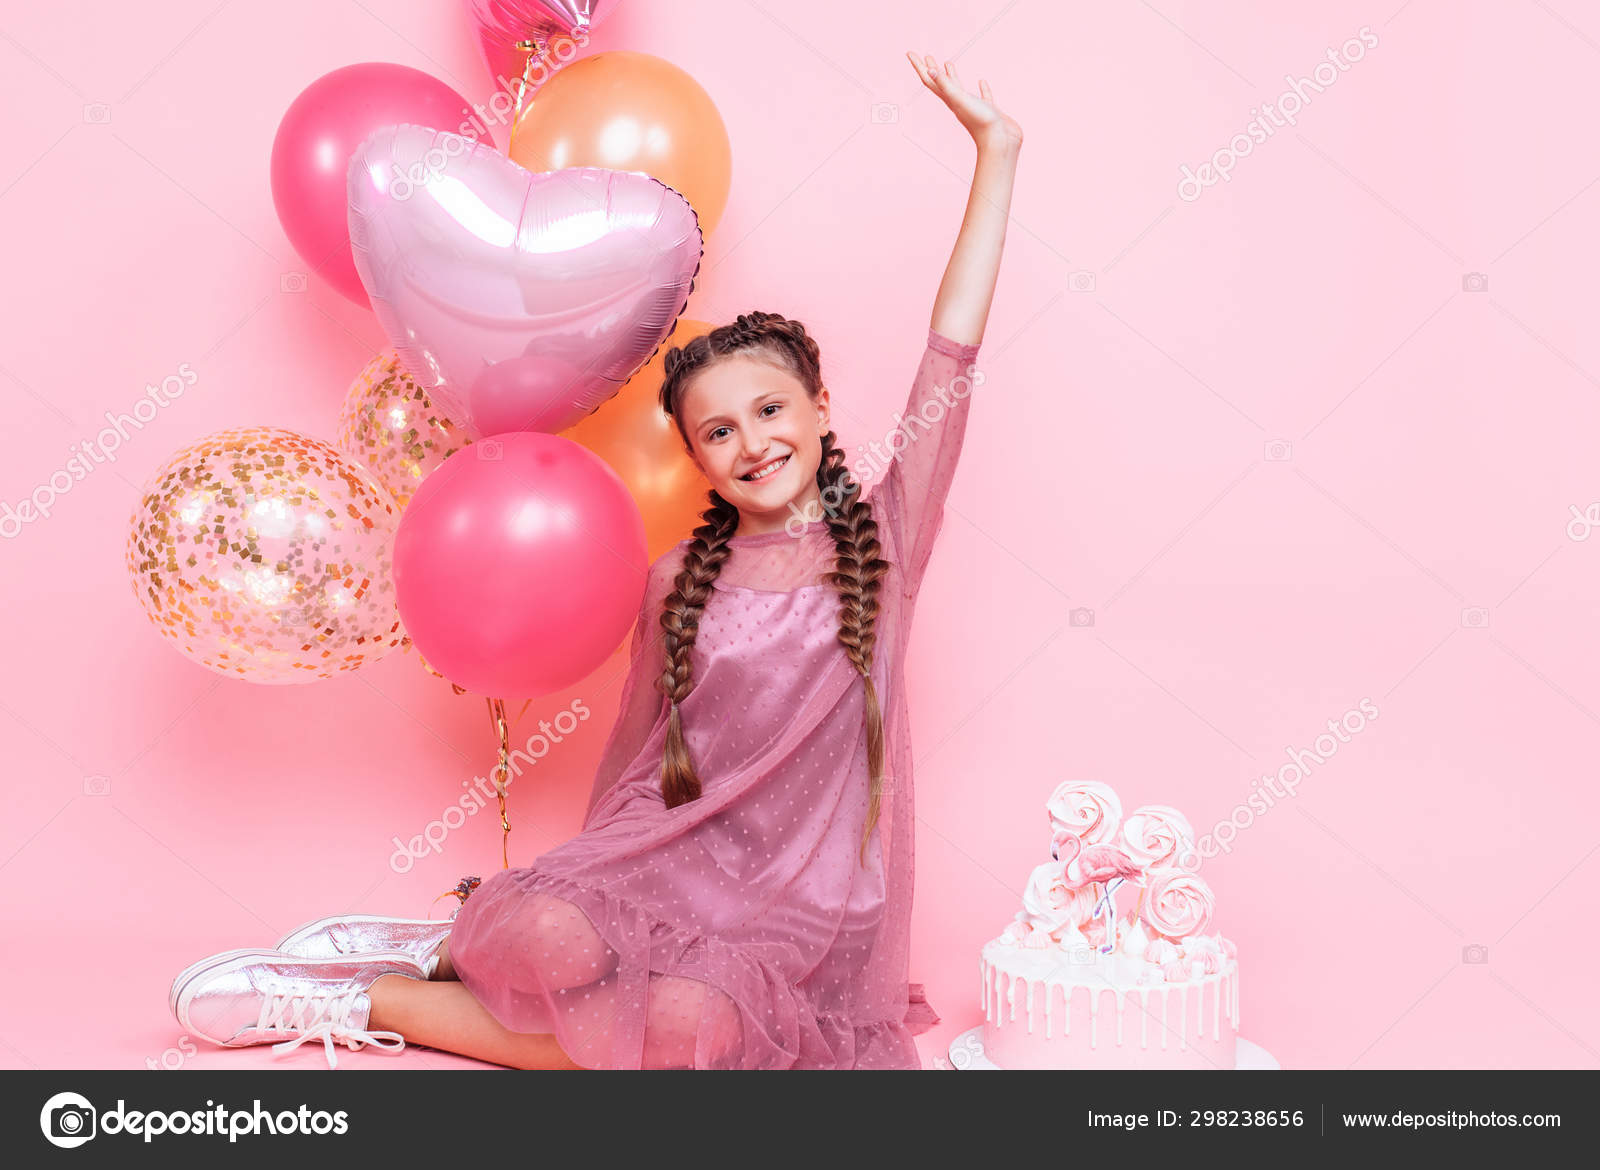 Groovy Teenage Girl With Balloons And A Birthday Cake Posing On A Pink Birthday Cards Printable Opercafe Filternl